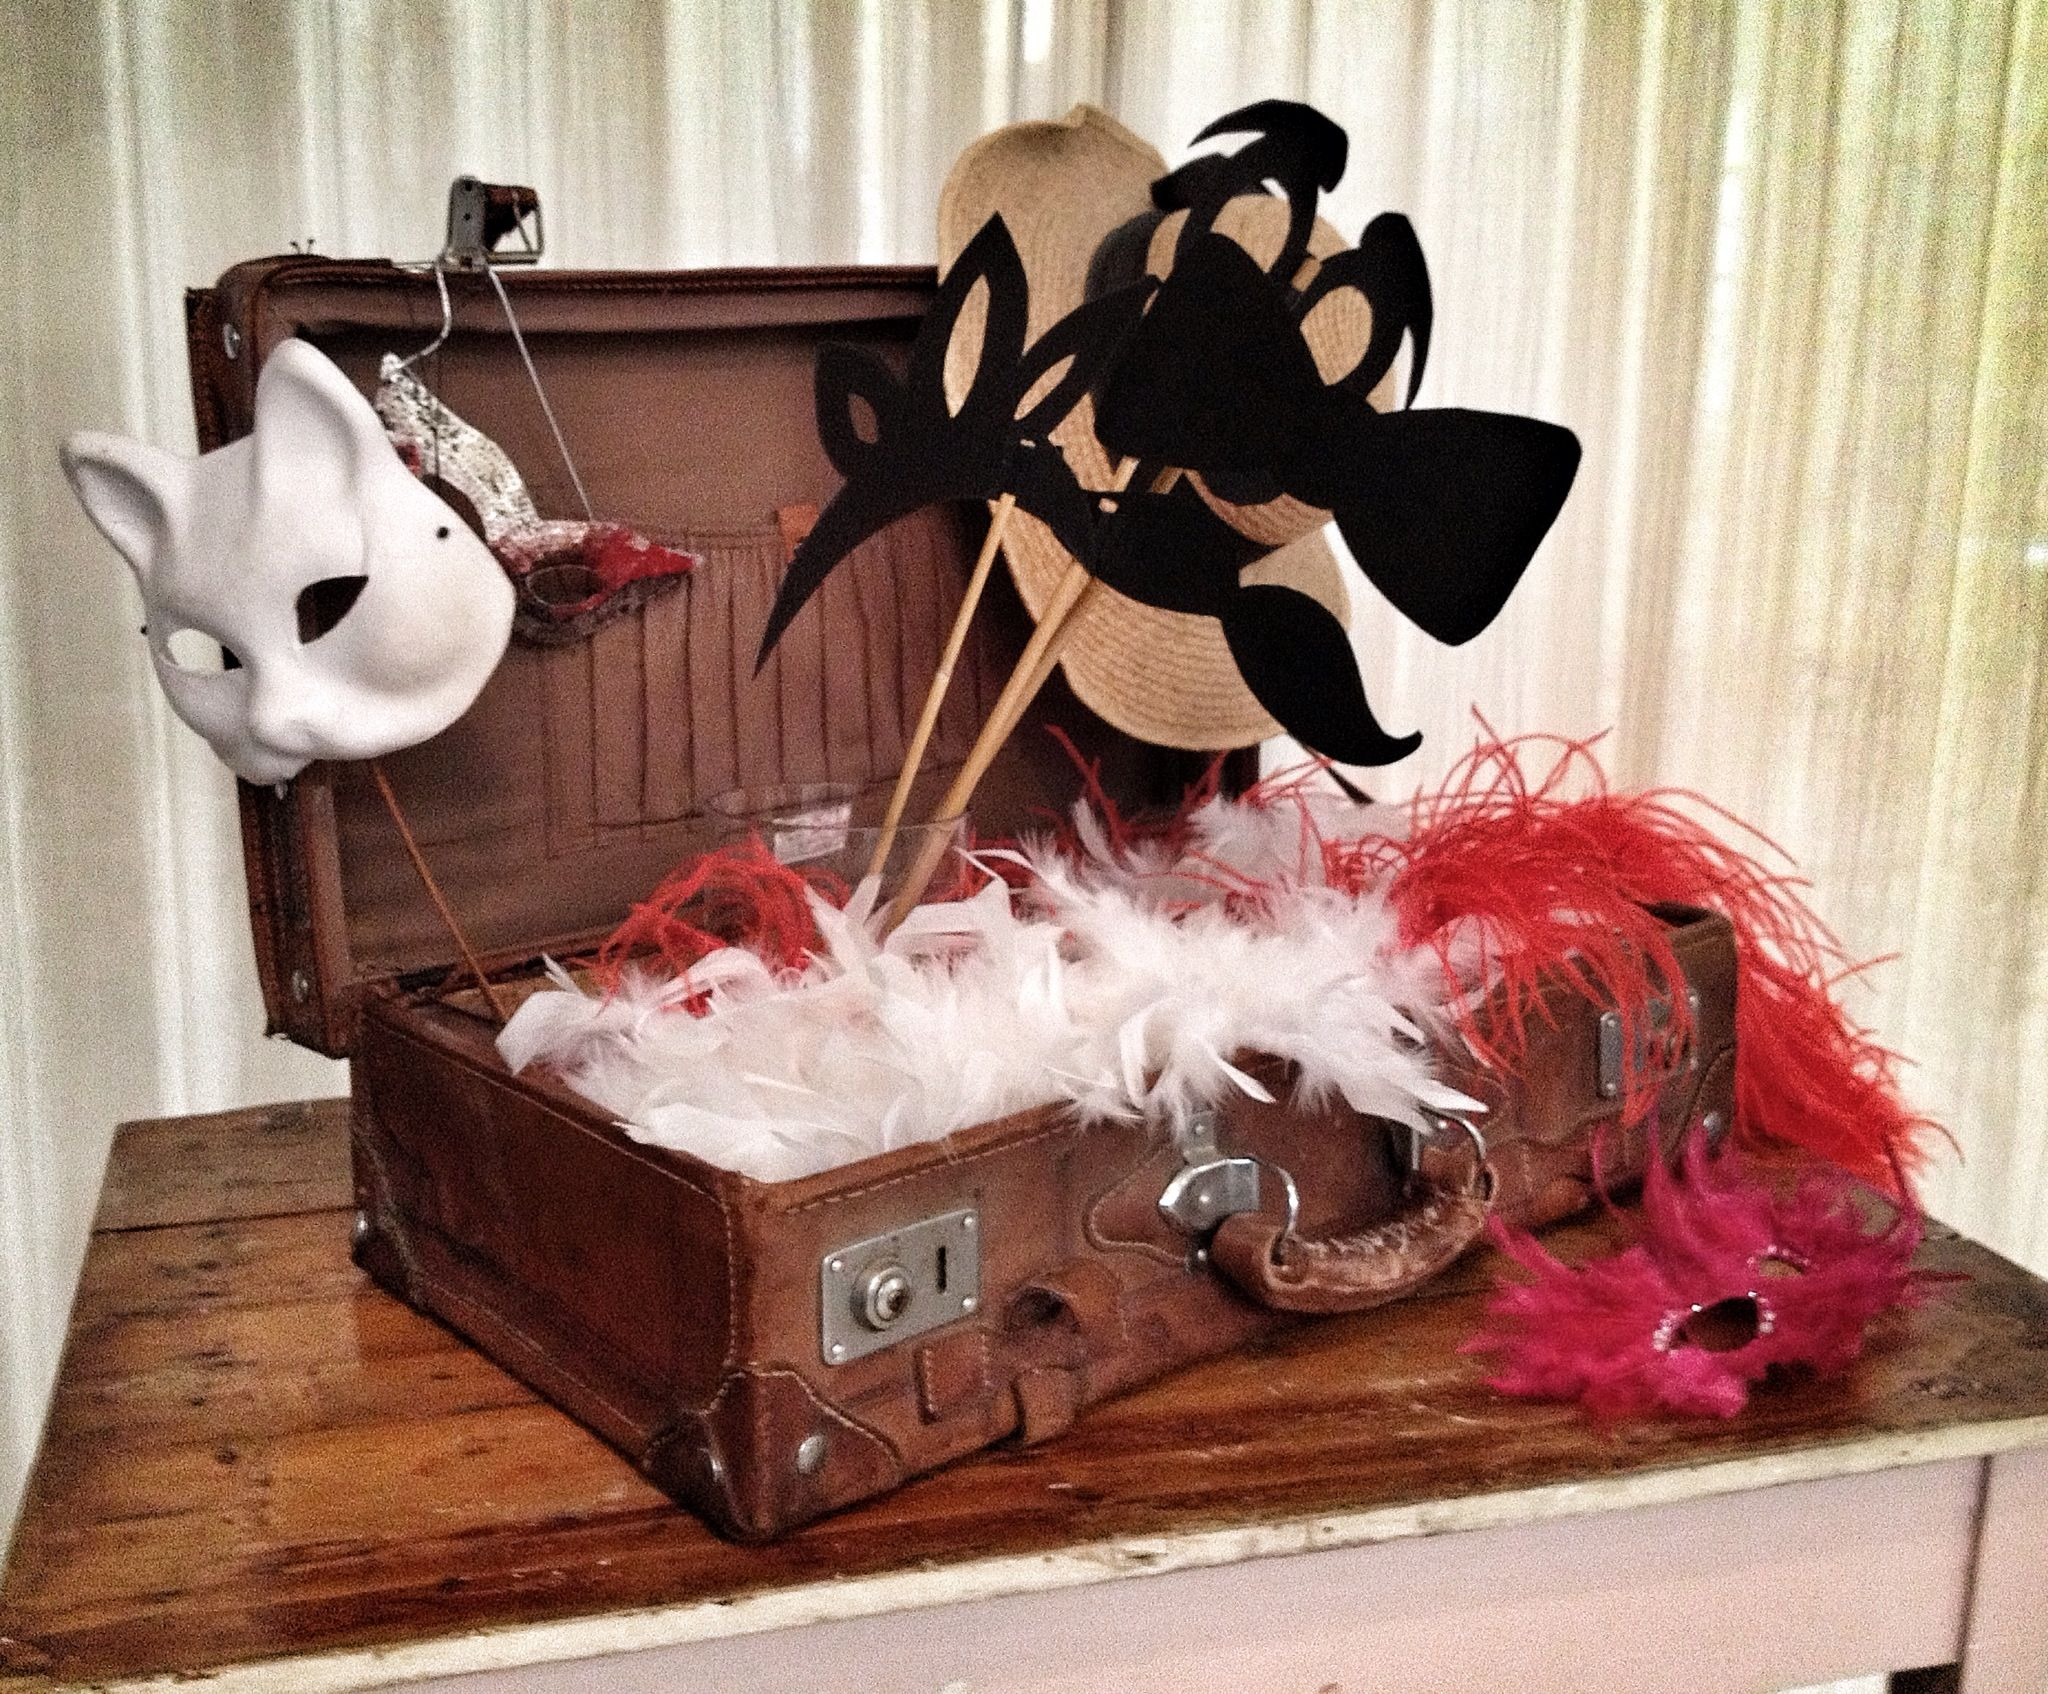 Old suitcase with mixed props